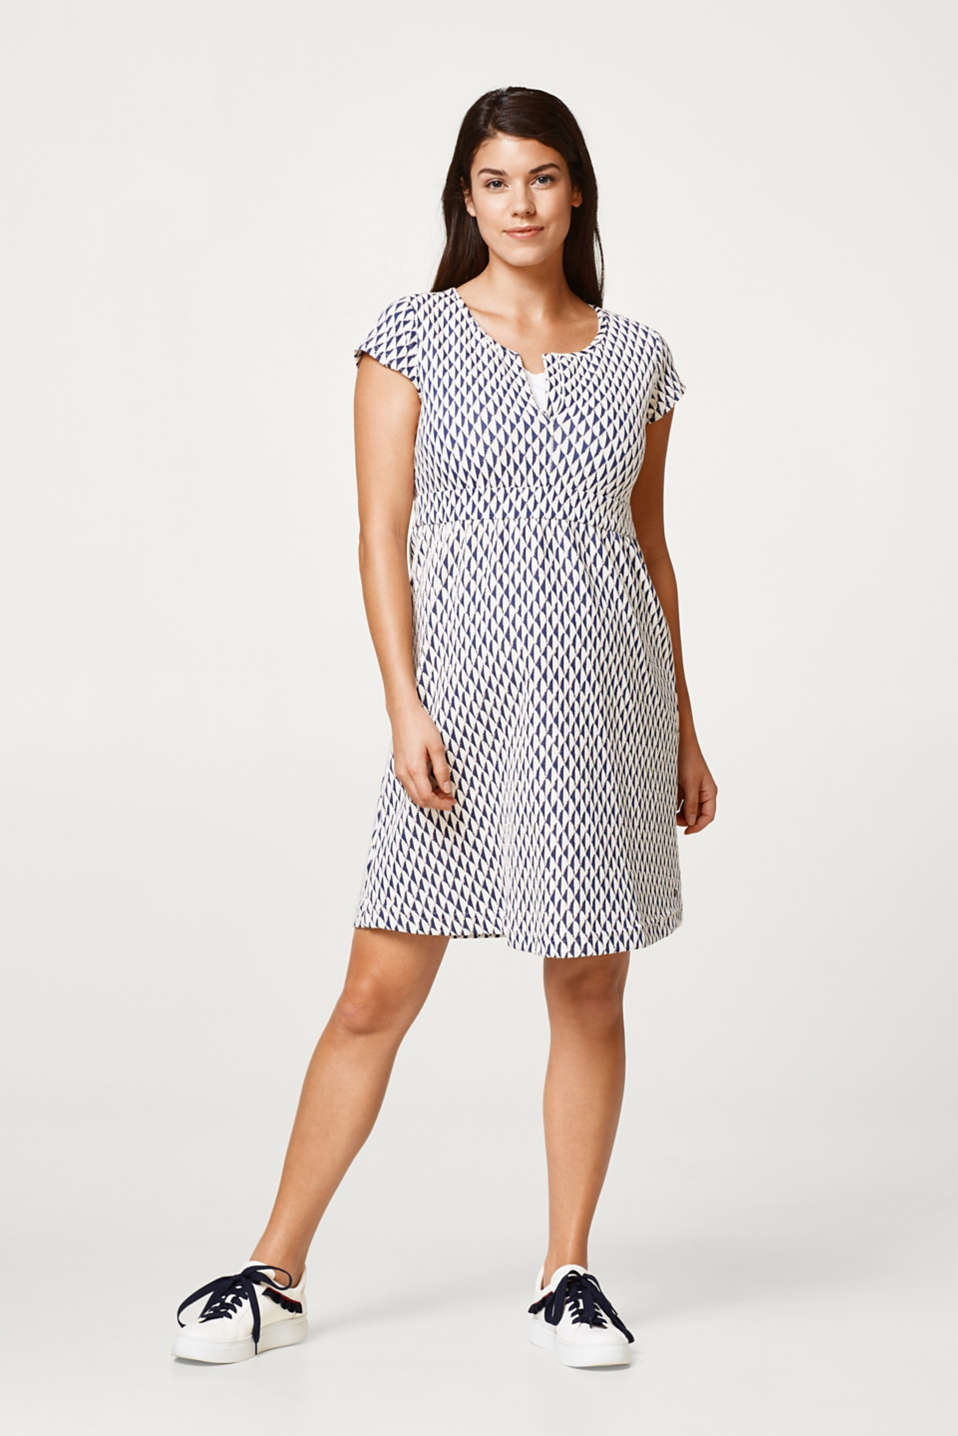 Jacquard dress with a nursing function